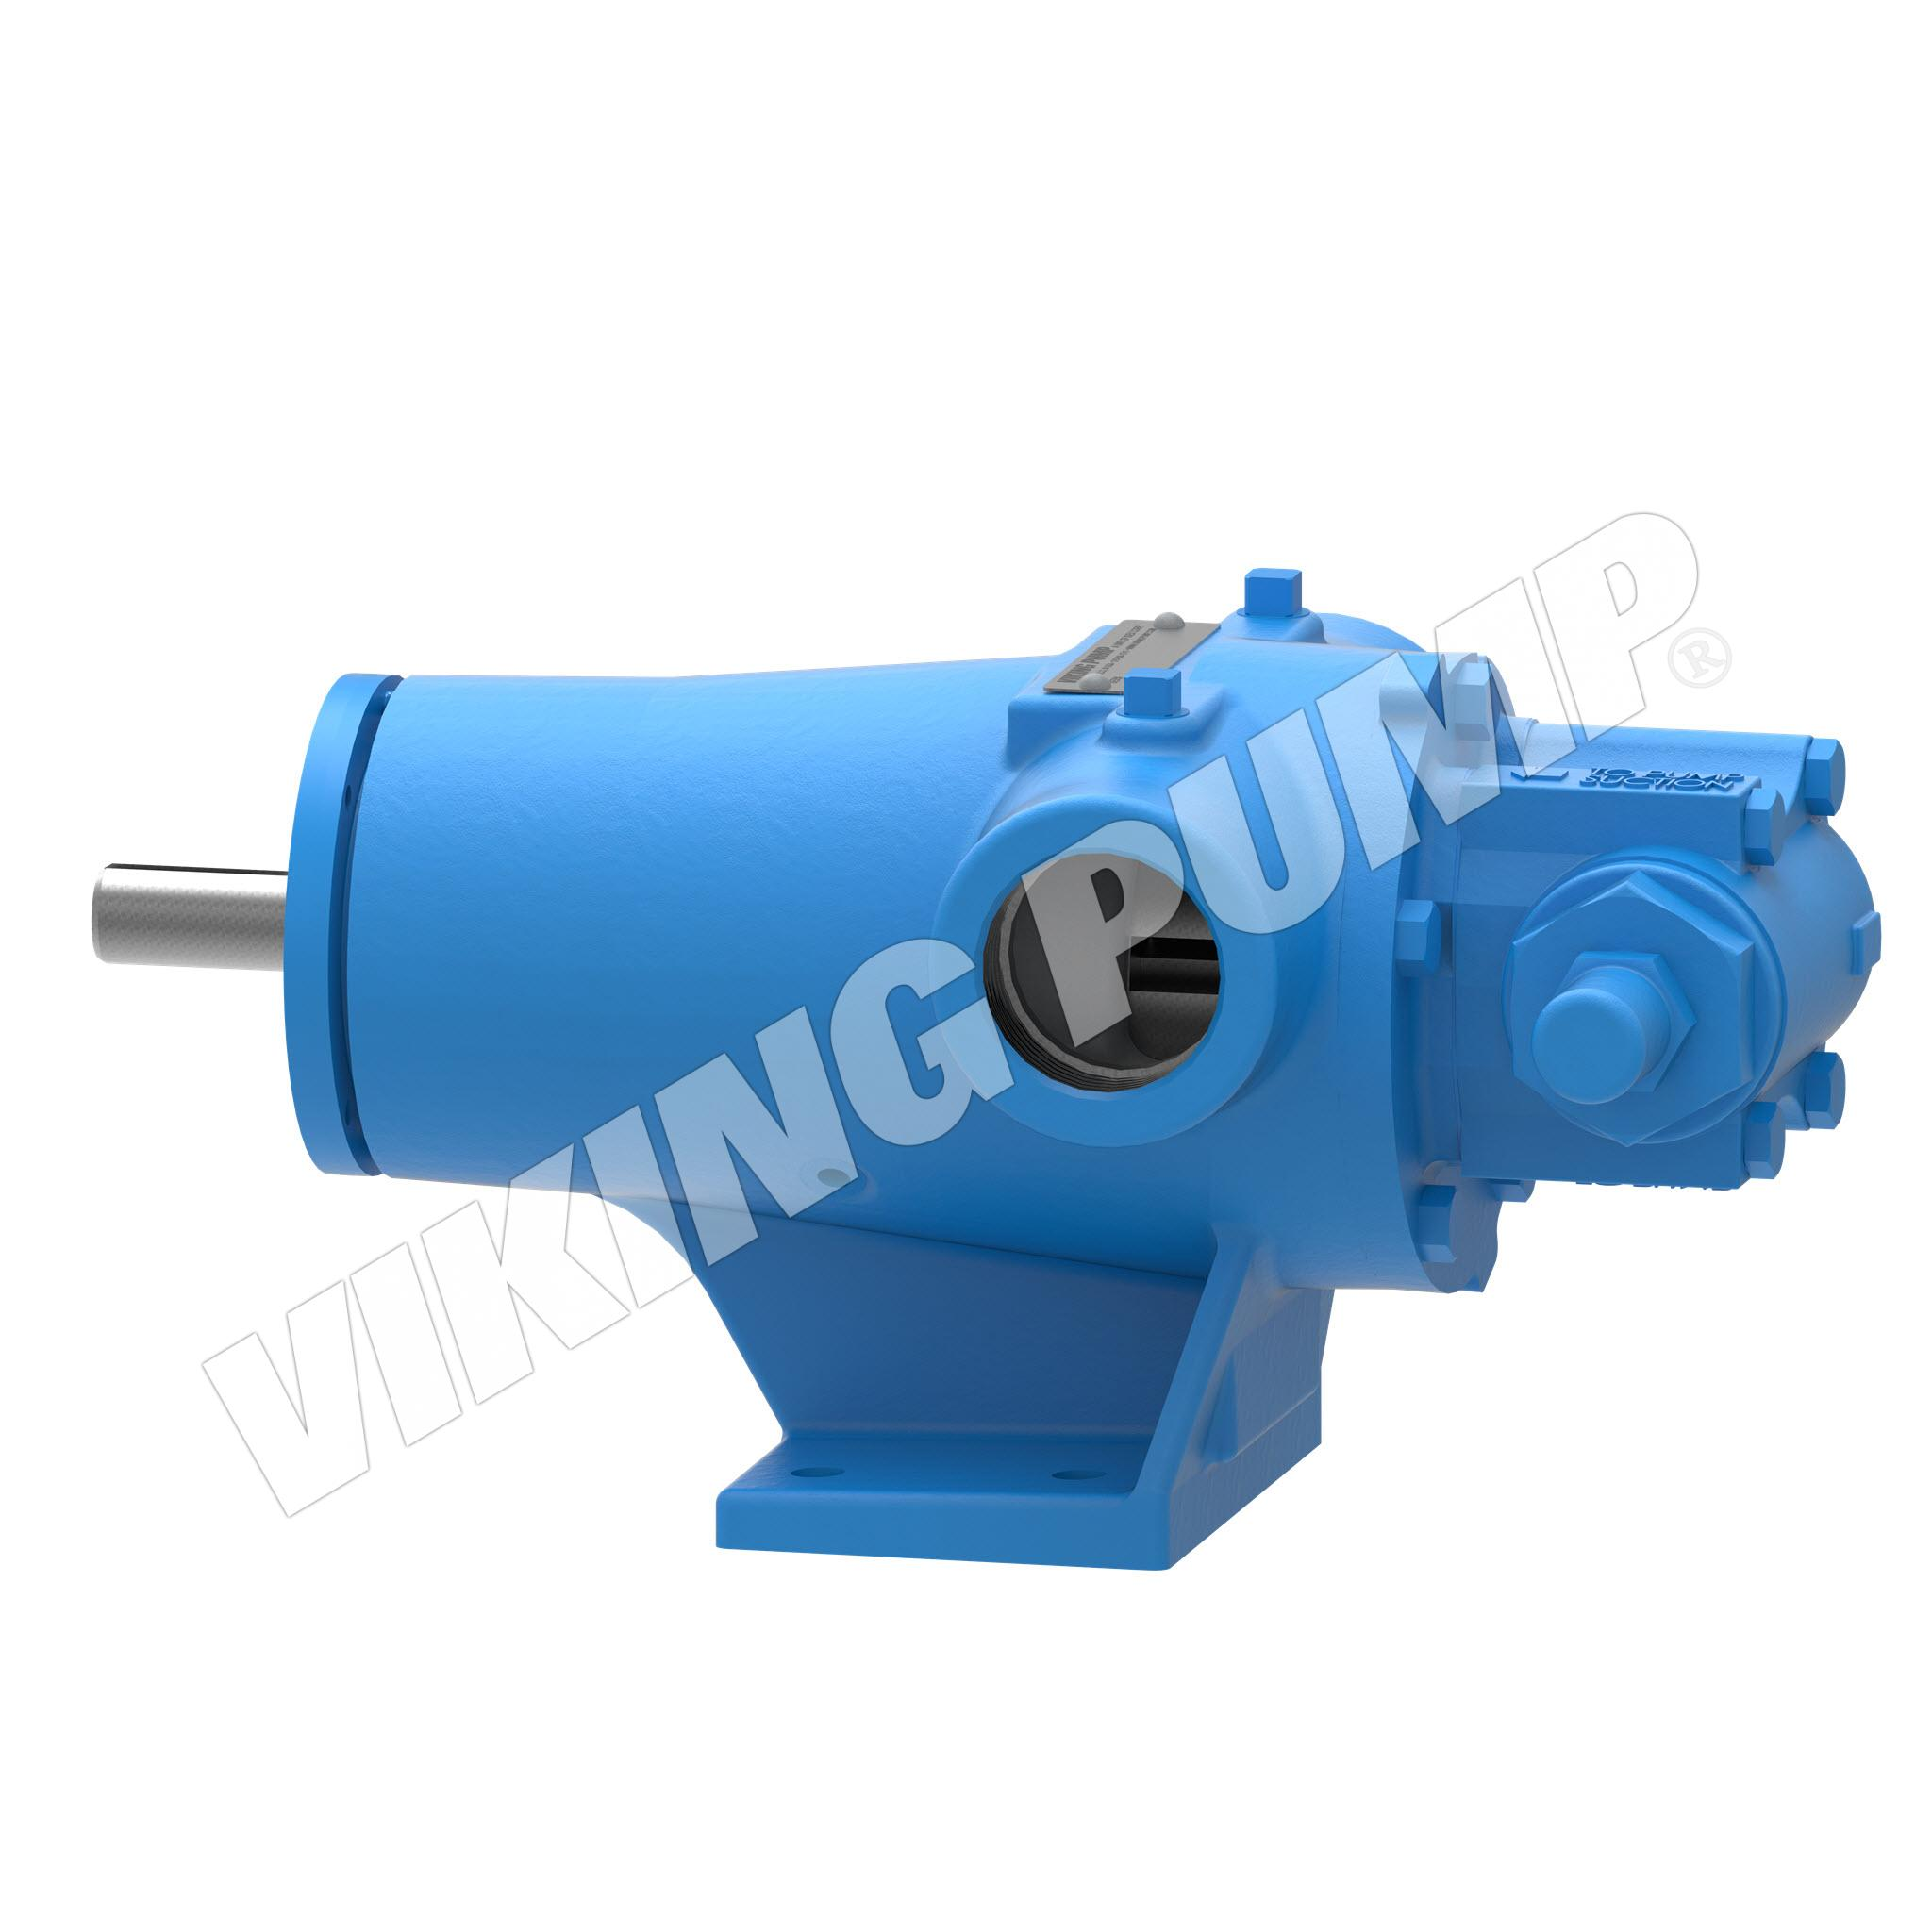 Model HL4195, Foot-Mounted, Mechanical Seal, Relief Valve Pump